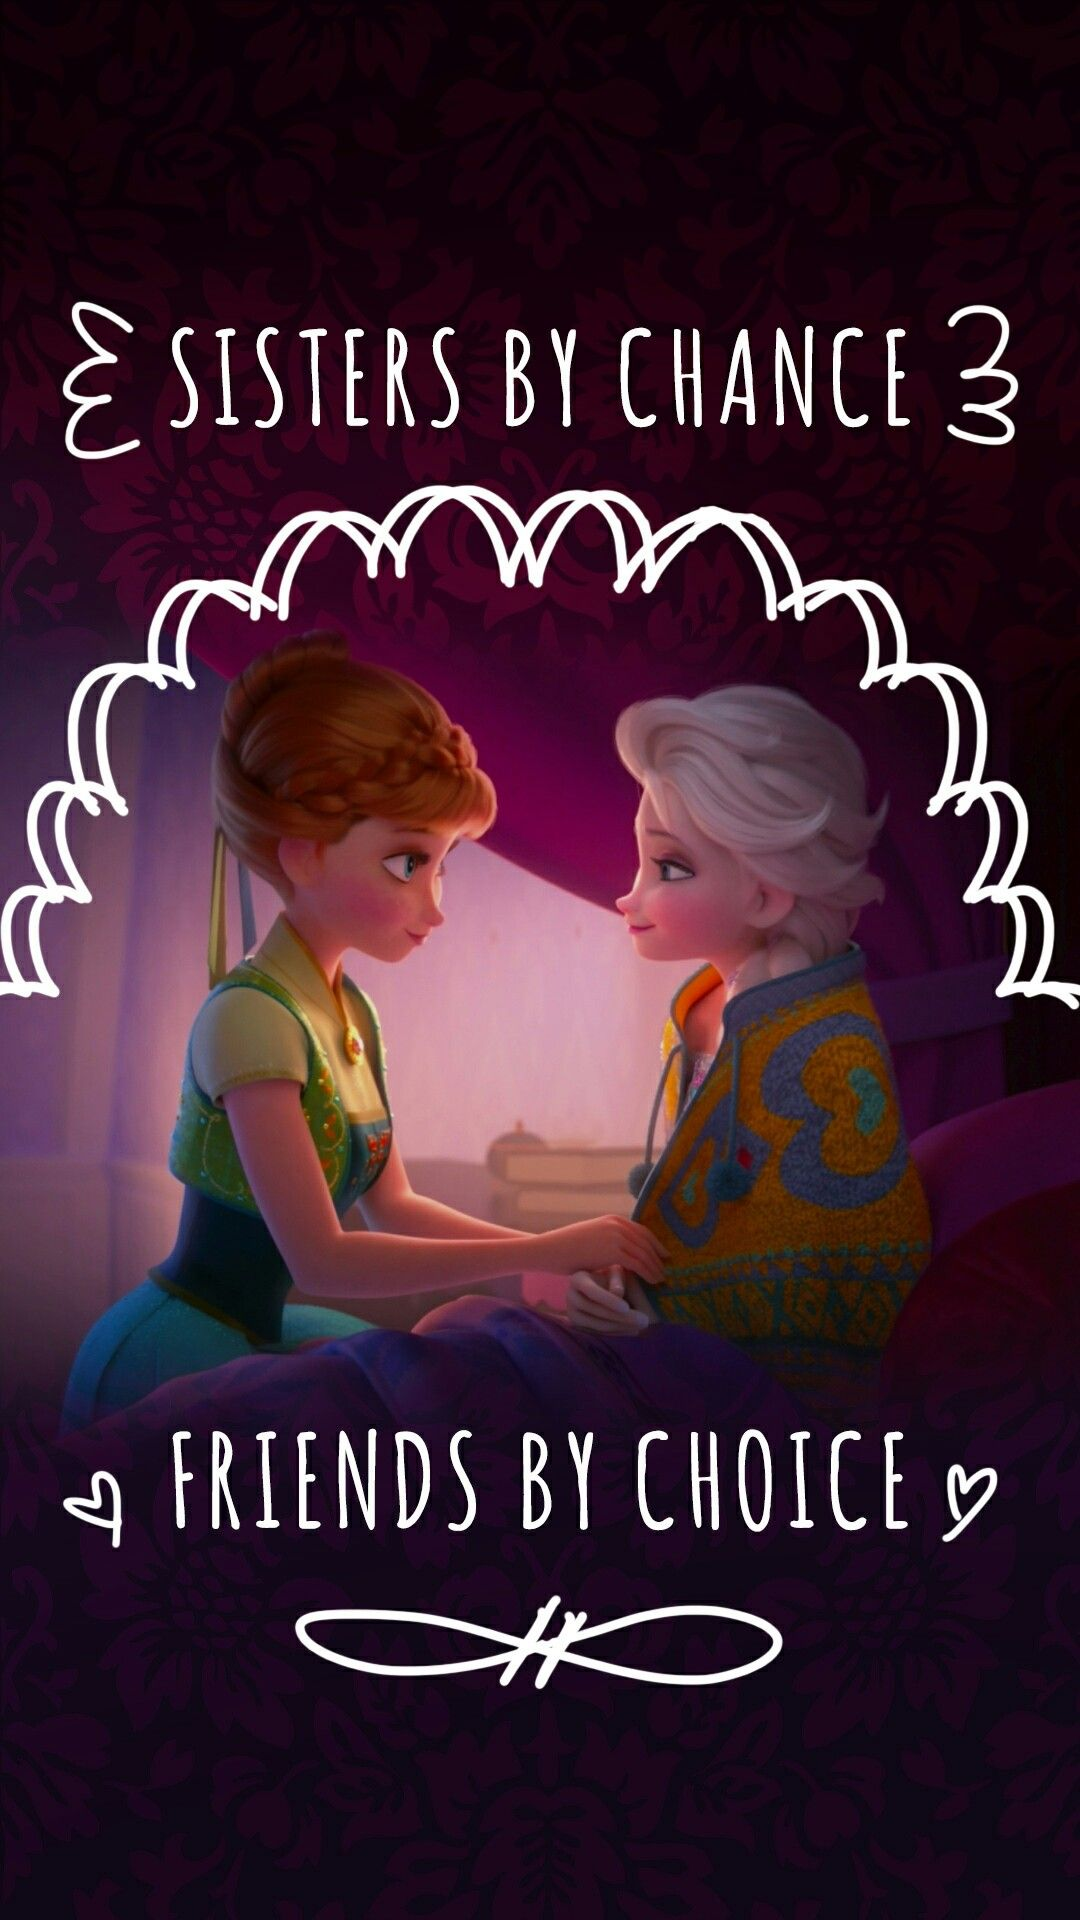 Frozen Sisters Love Quotes - Year of Clean Water